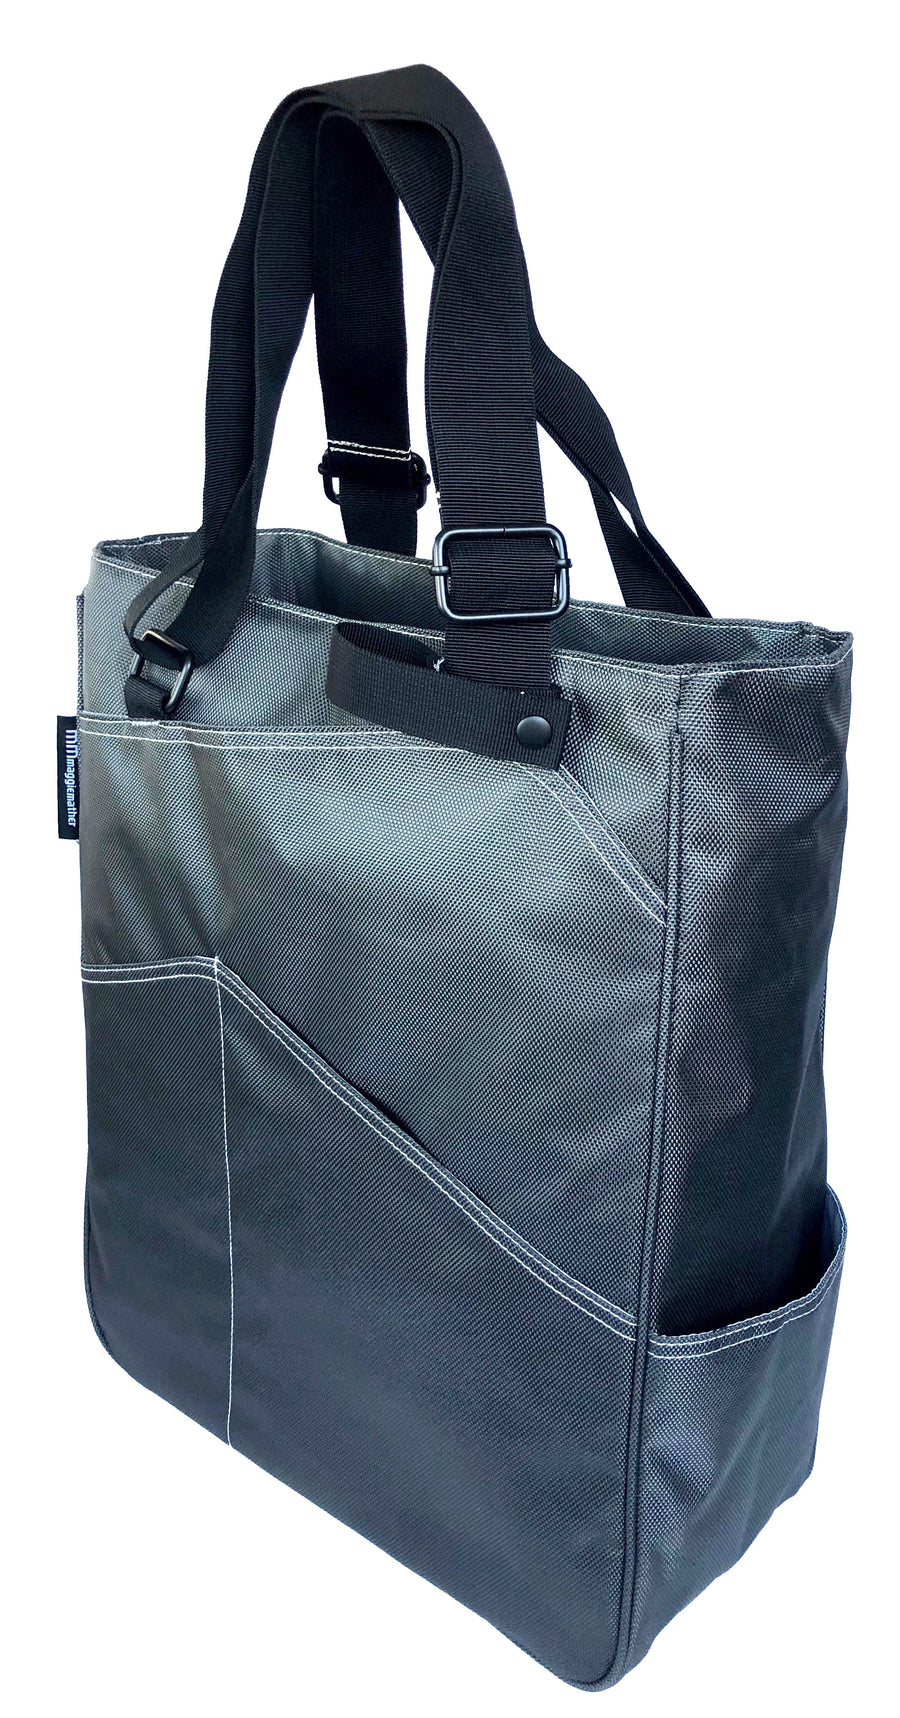 Tennis Tote in Pewter